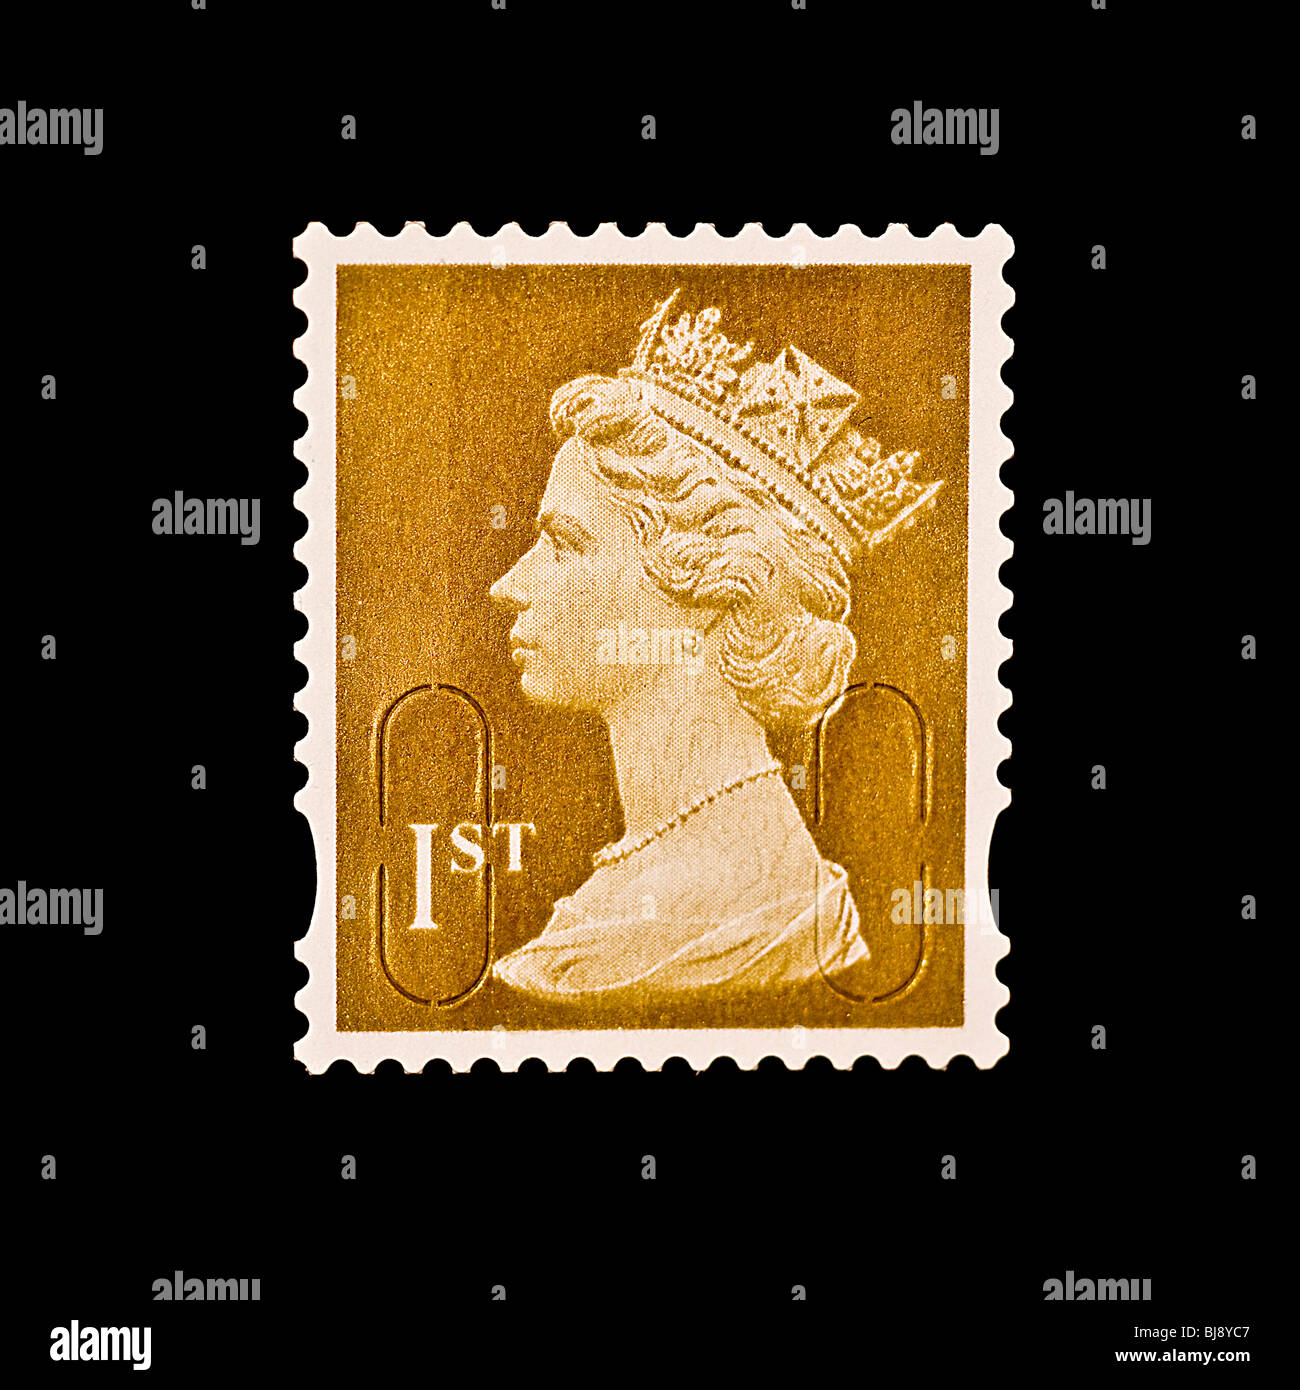 First class Postage stamp - Stock Image